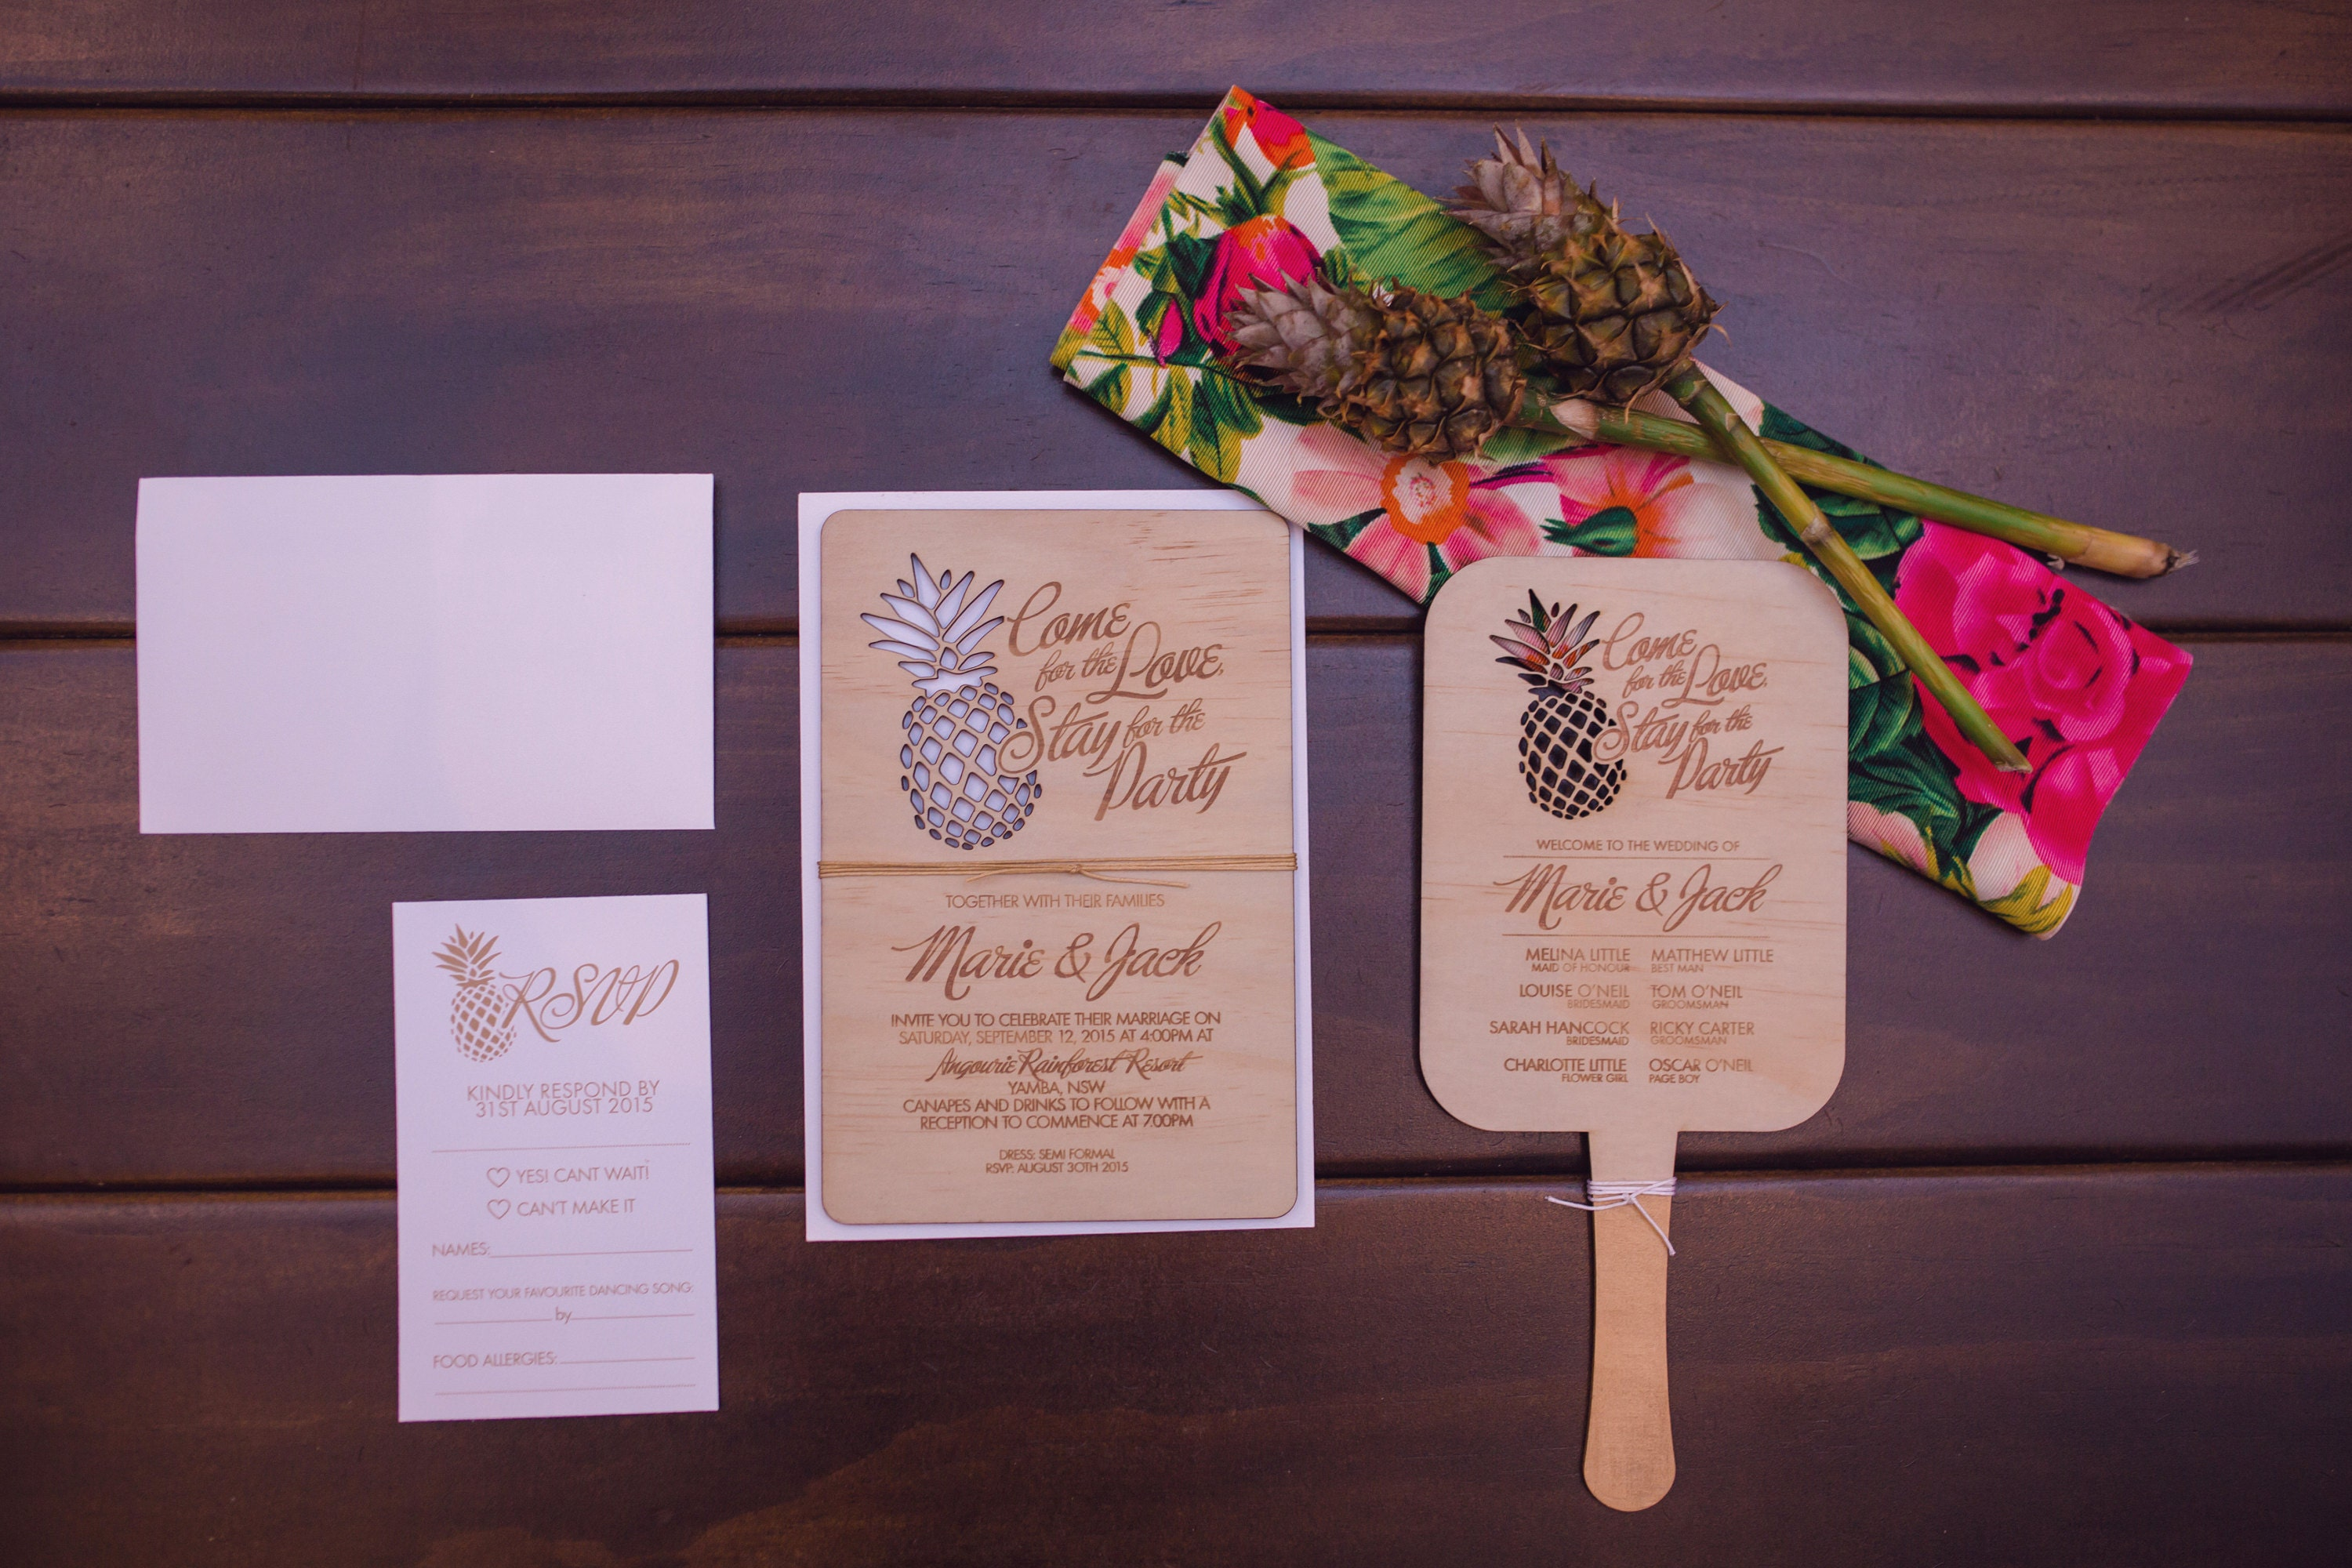 Wood Wedding Invitation - The Rustic at Heart